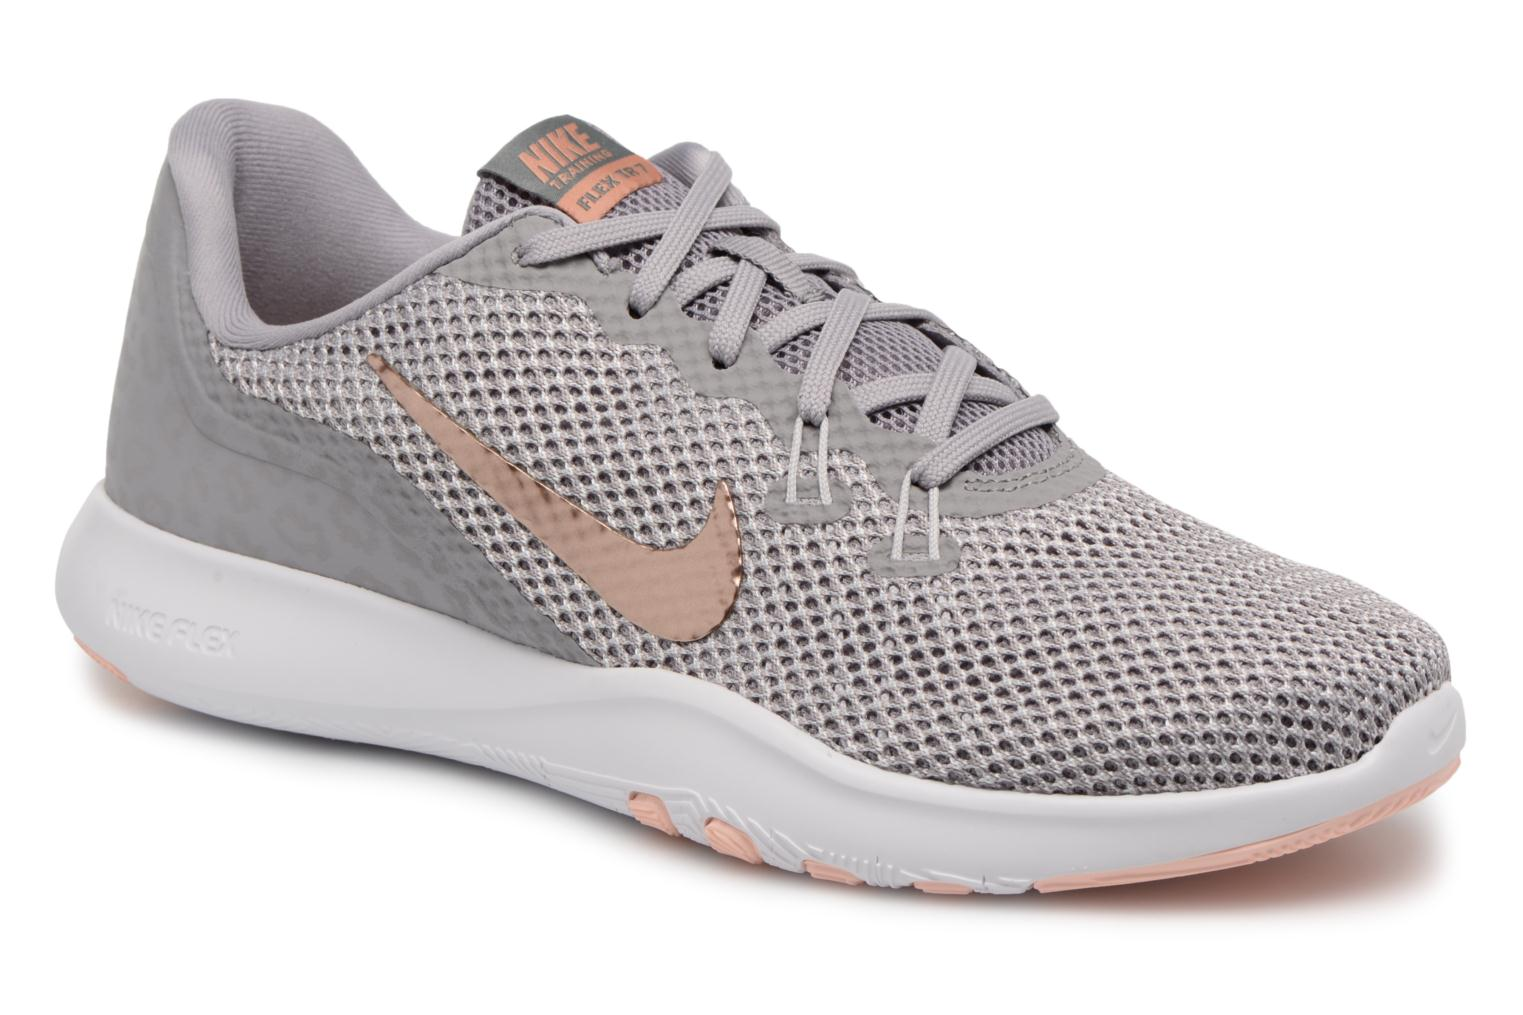 W Nike Flex Trainer 7 Print Atmosphere Grey/Mtlc Red Bronze